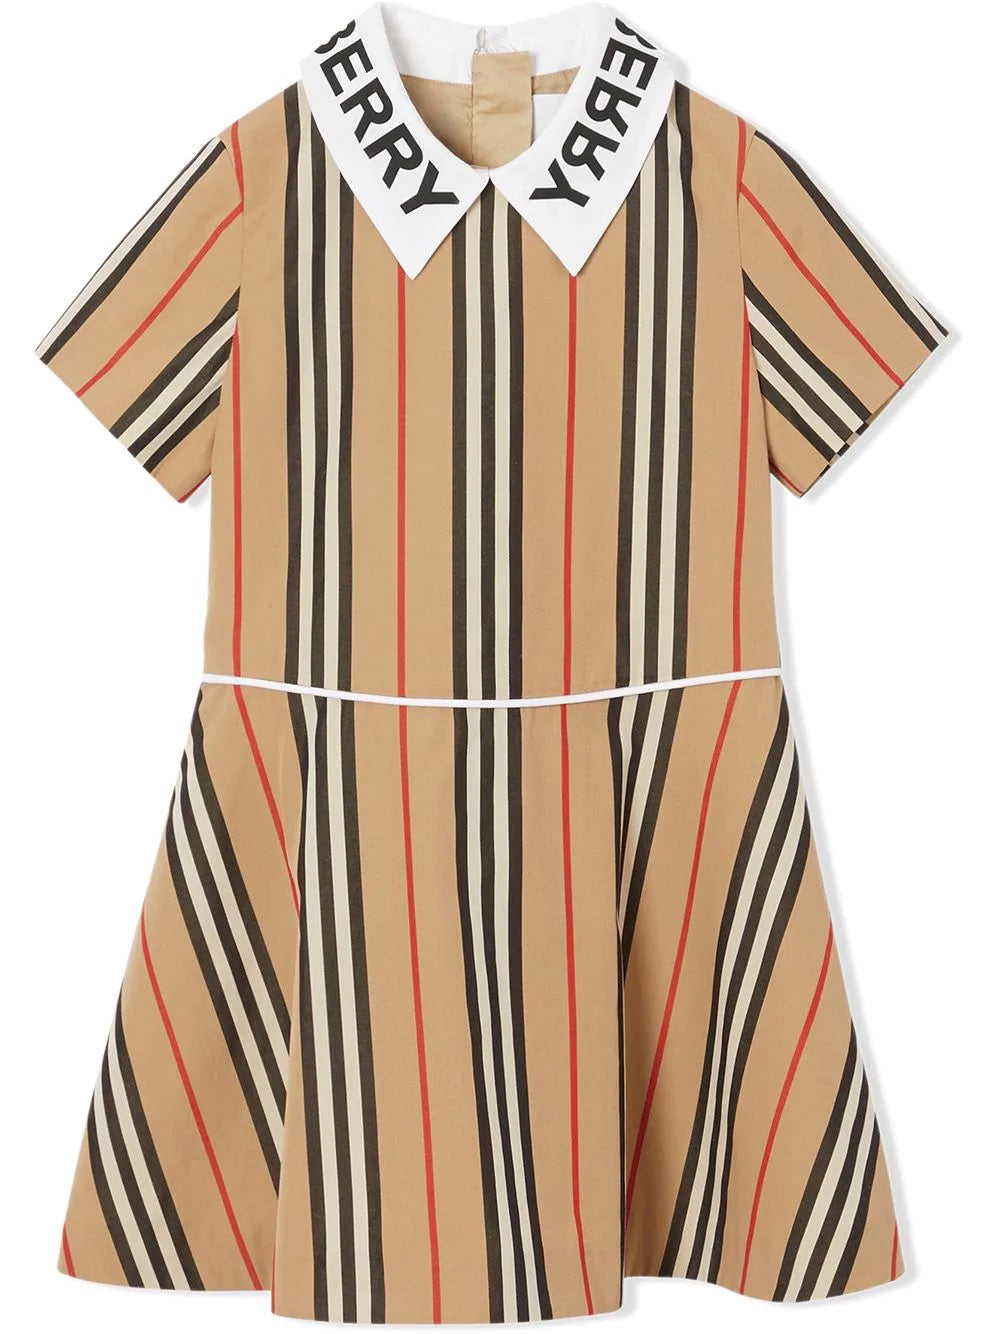 Burberry Kids logo print icon stripe cotton poplin dress